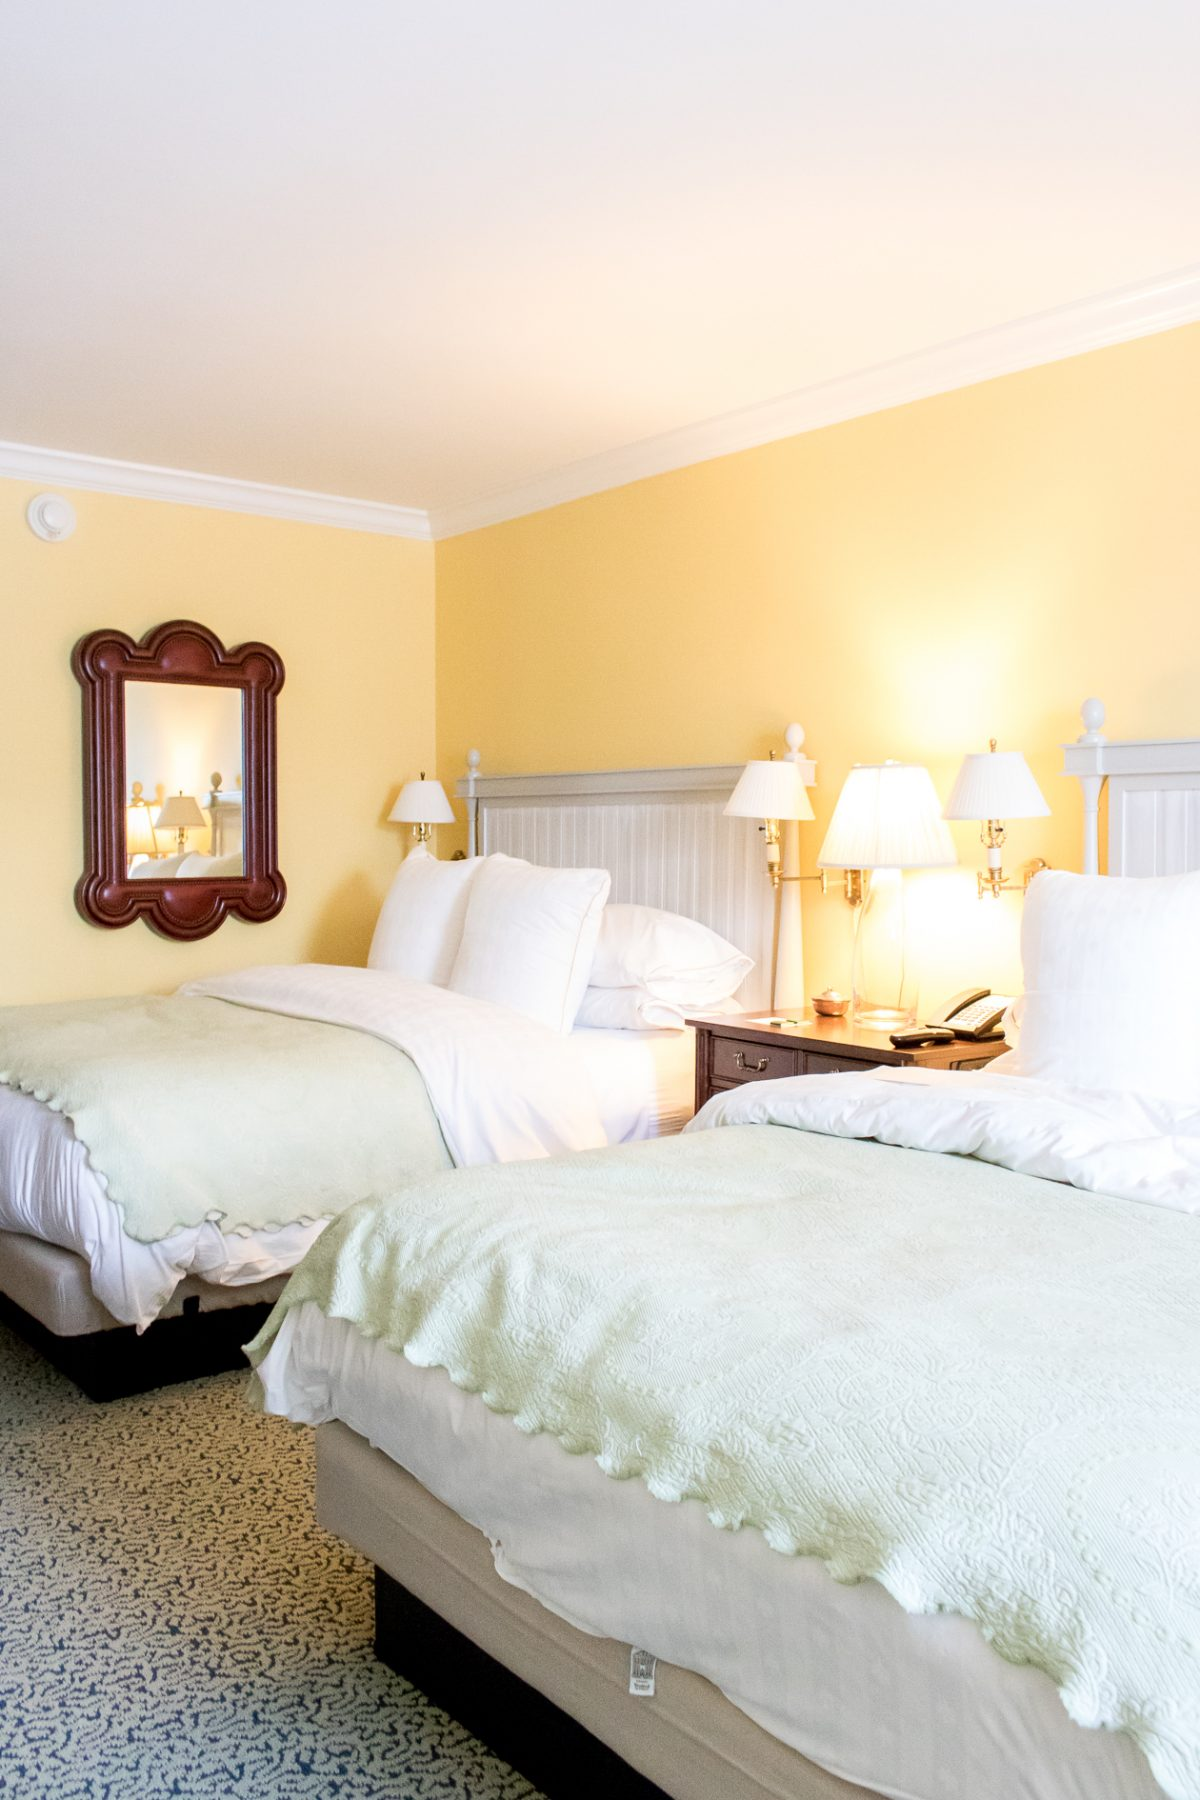 Queen Size Beds with Yellow Walls at Woodstock Inn and Resort in Woodstock Vermont